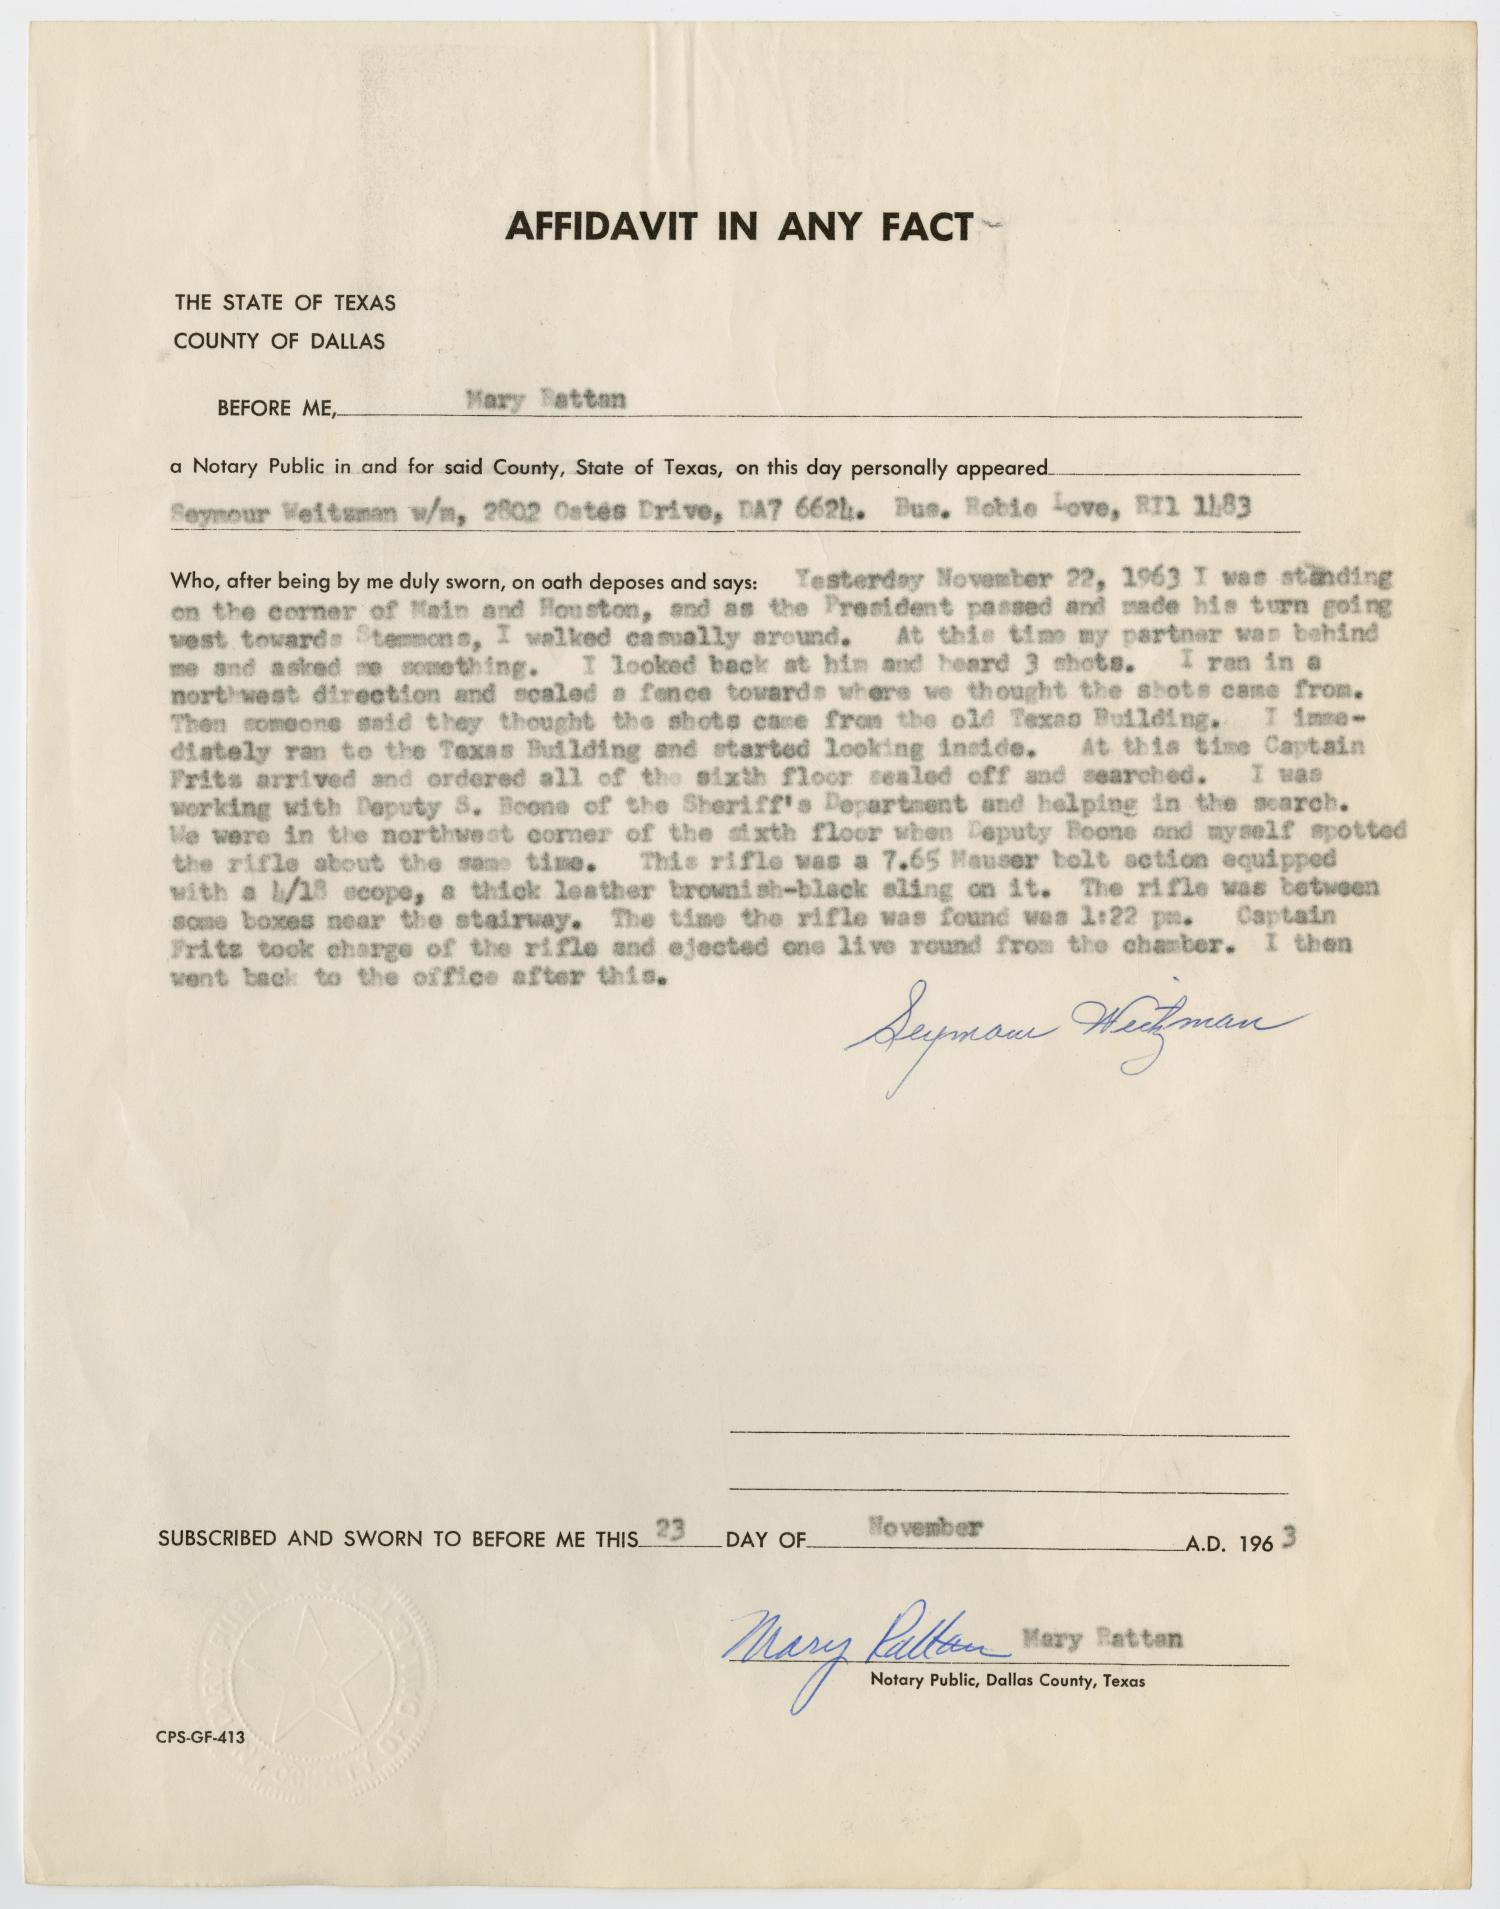 [Affidavit in Any Fact - Statement by Seymour Weitzman, November 23, 1963 #2]                                                                                                      [Sequence #]: 1 of 2